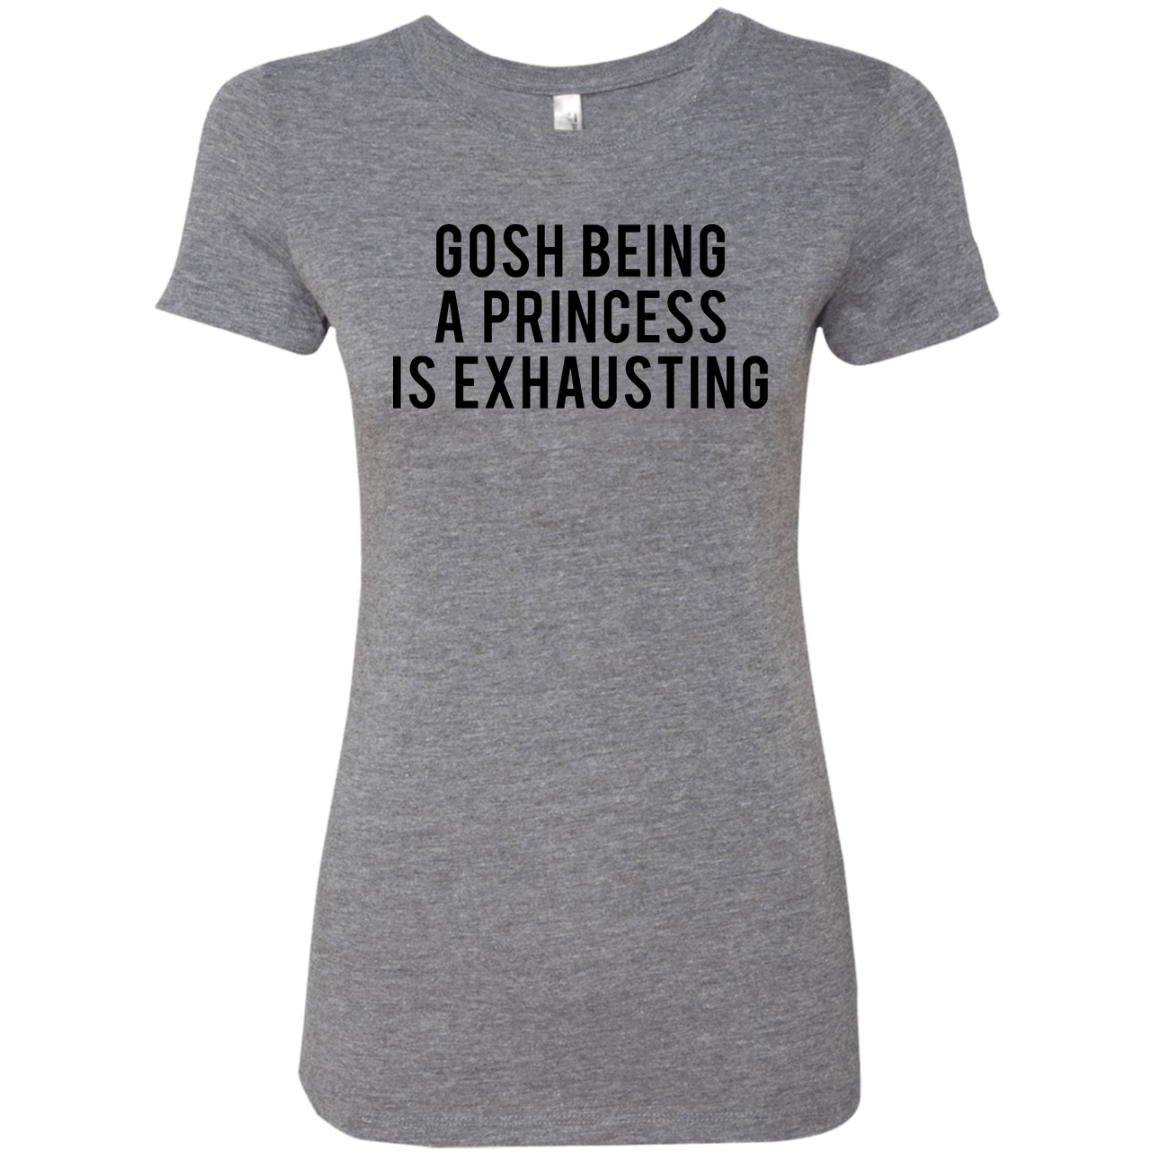 Gosh Being a Princess is Exhausting Women's Classic Tee - Trendy Tees